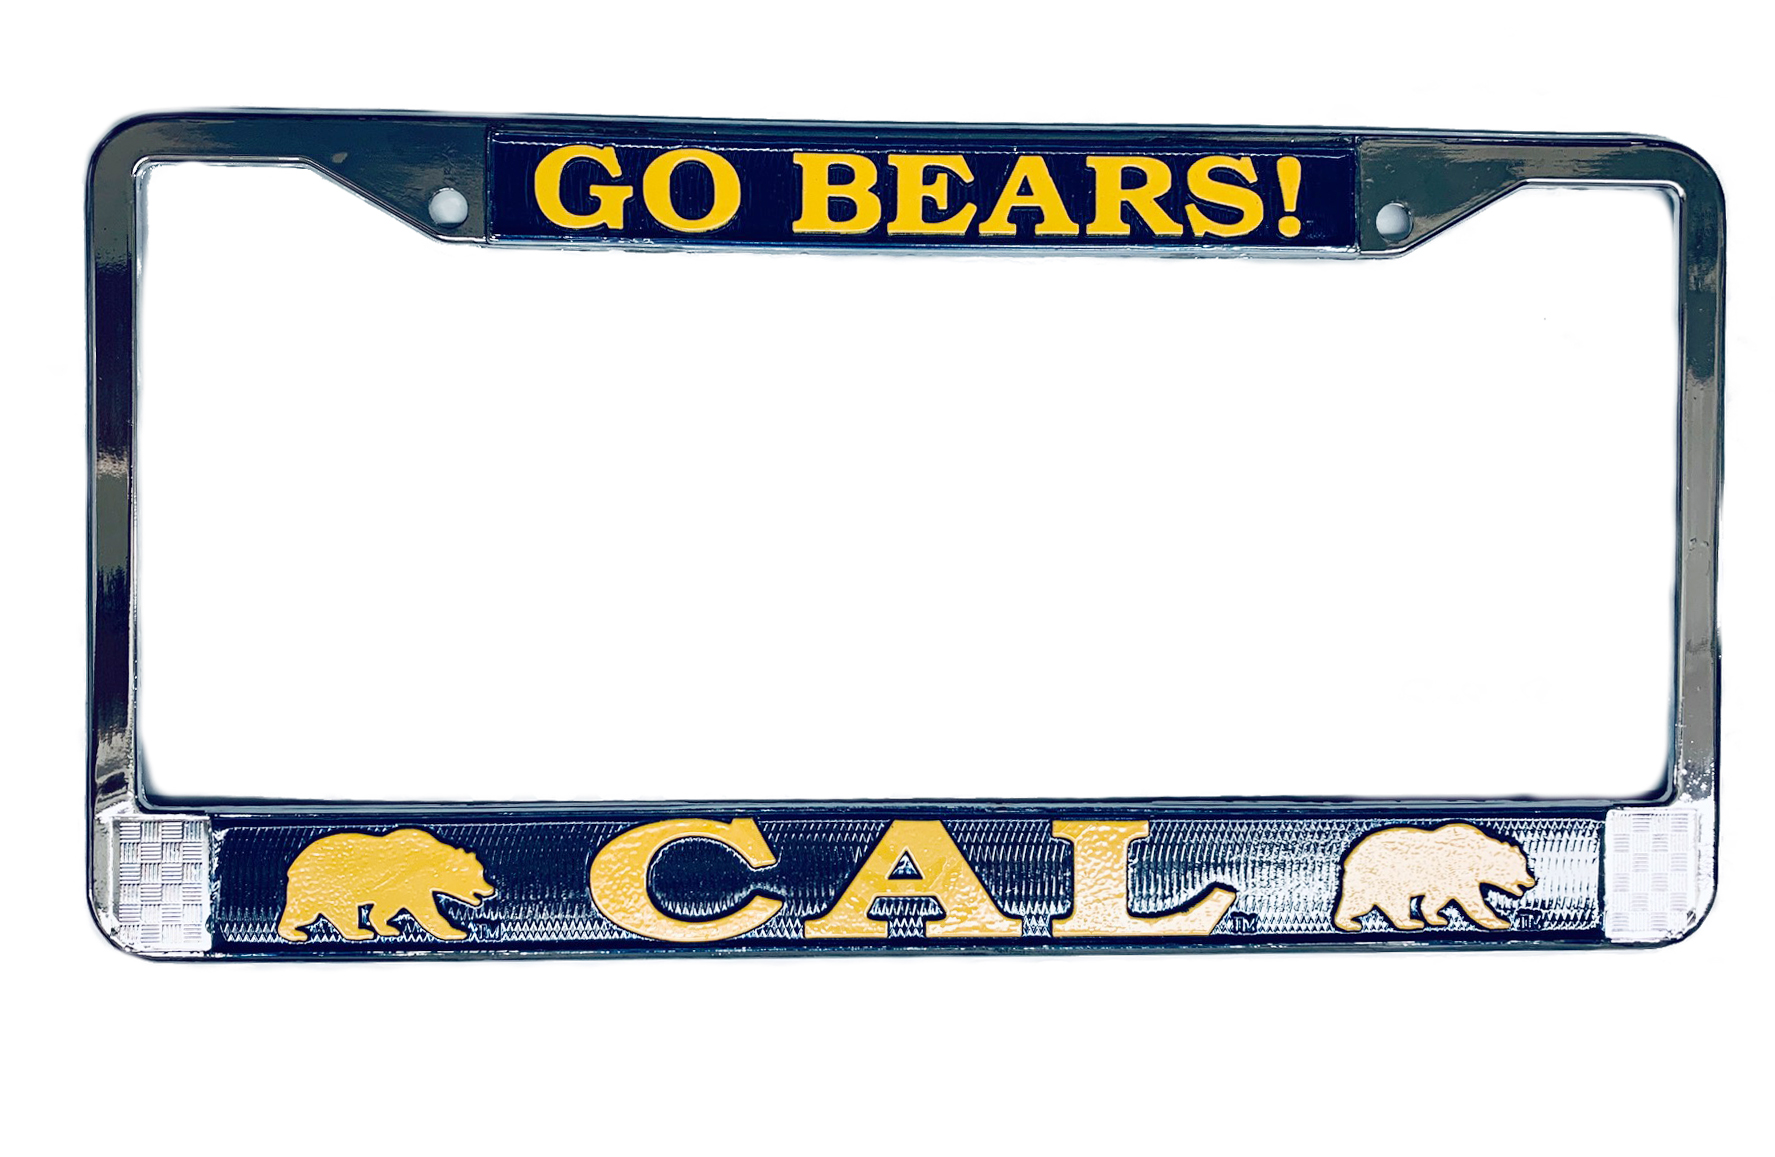 'Go Bears' License Plate